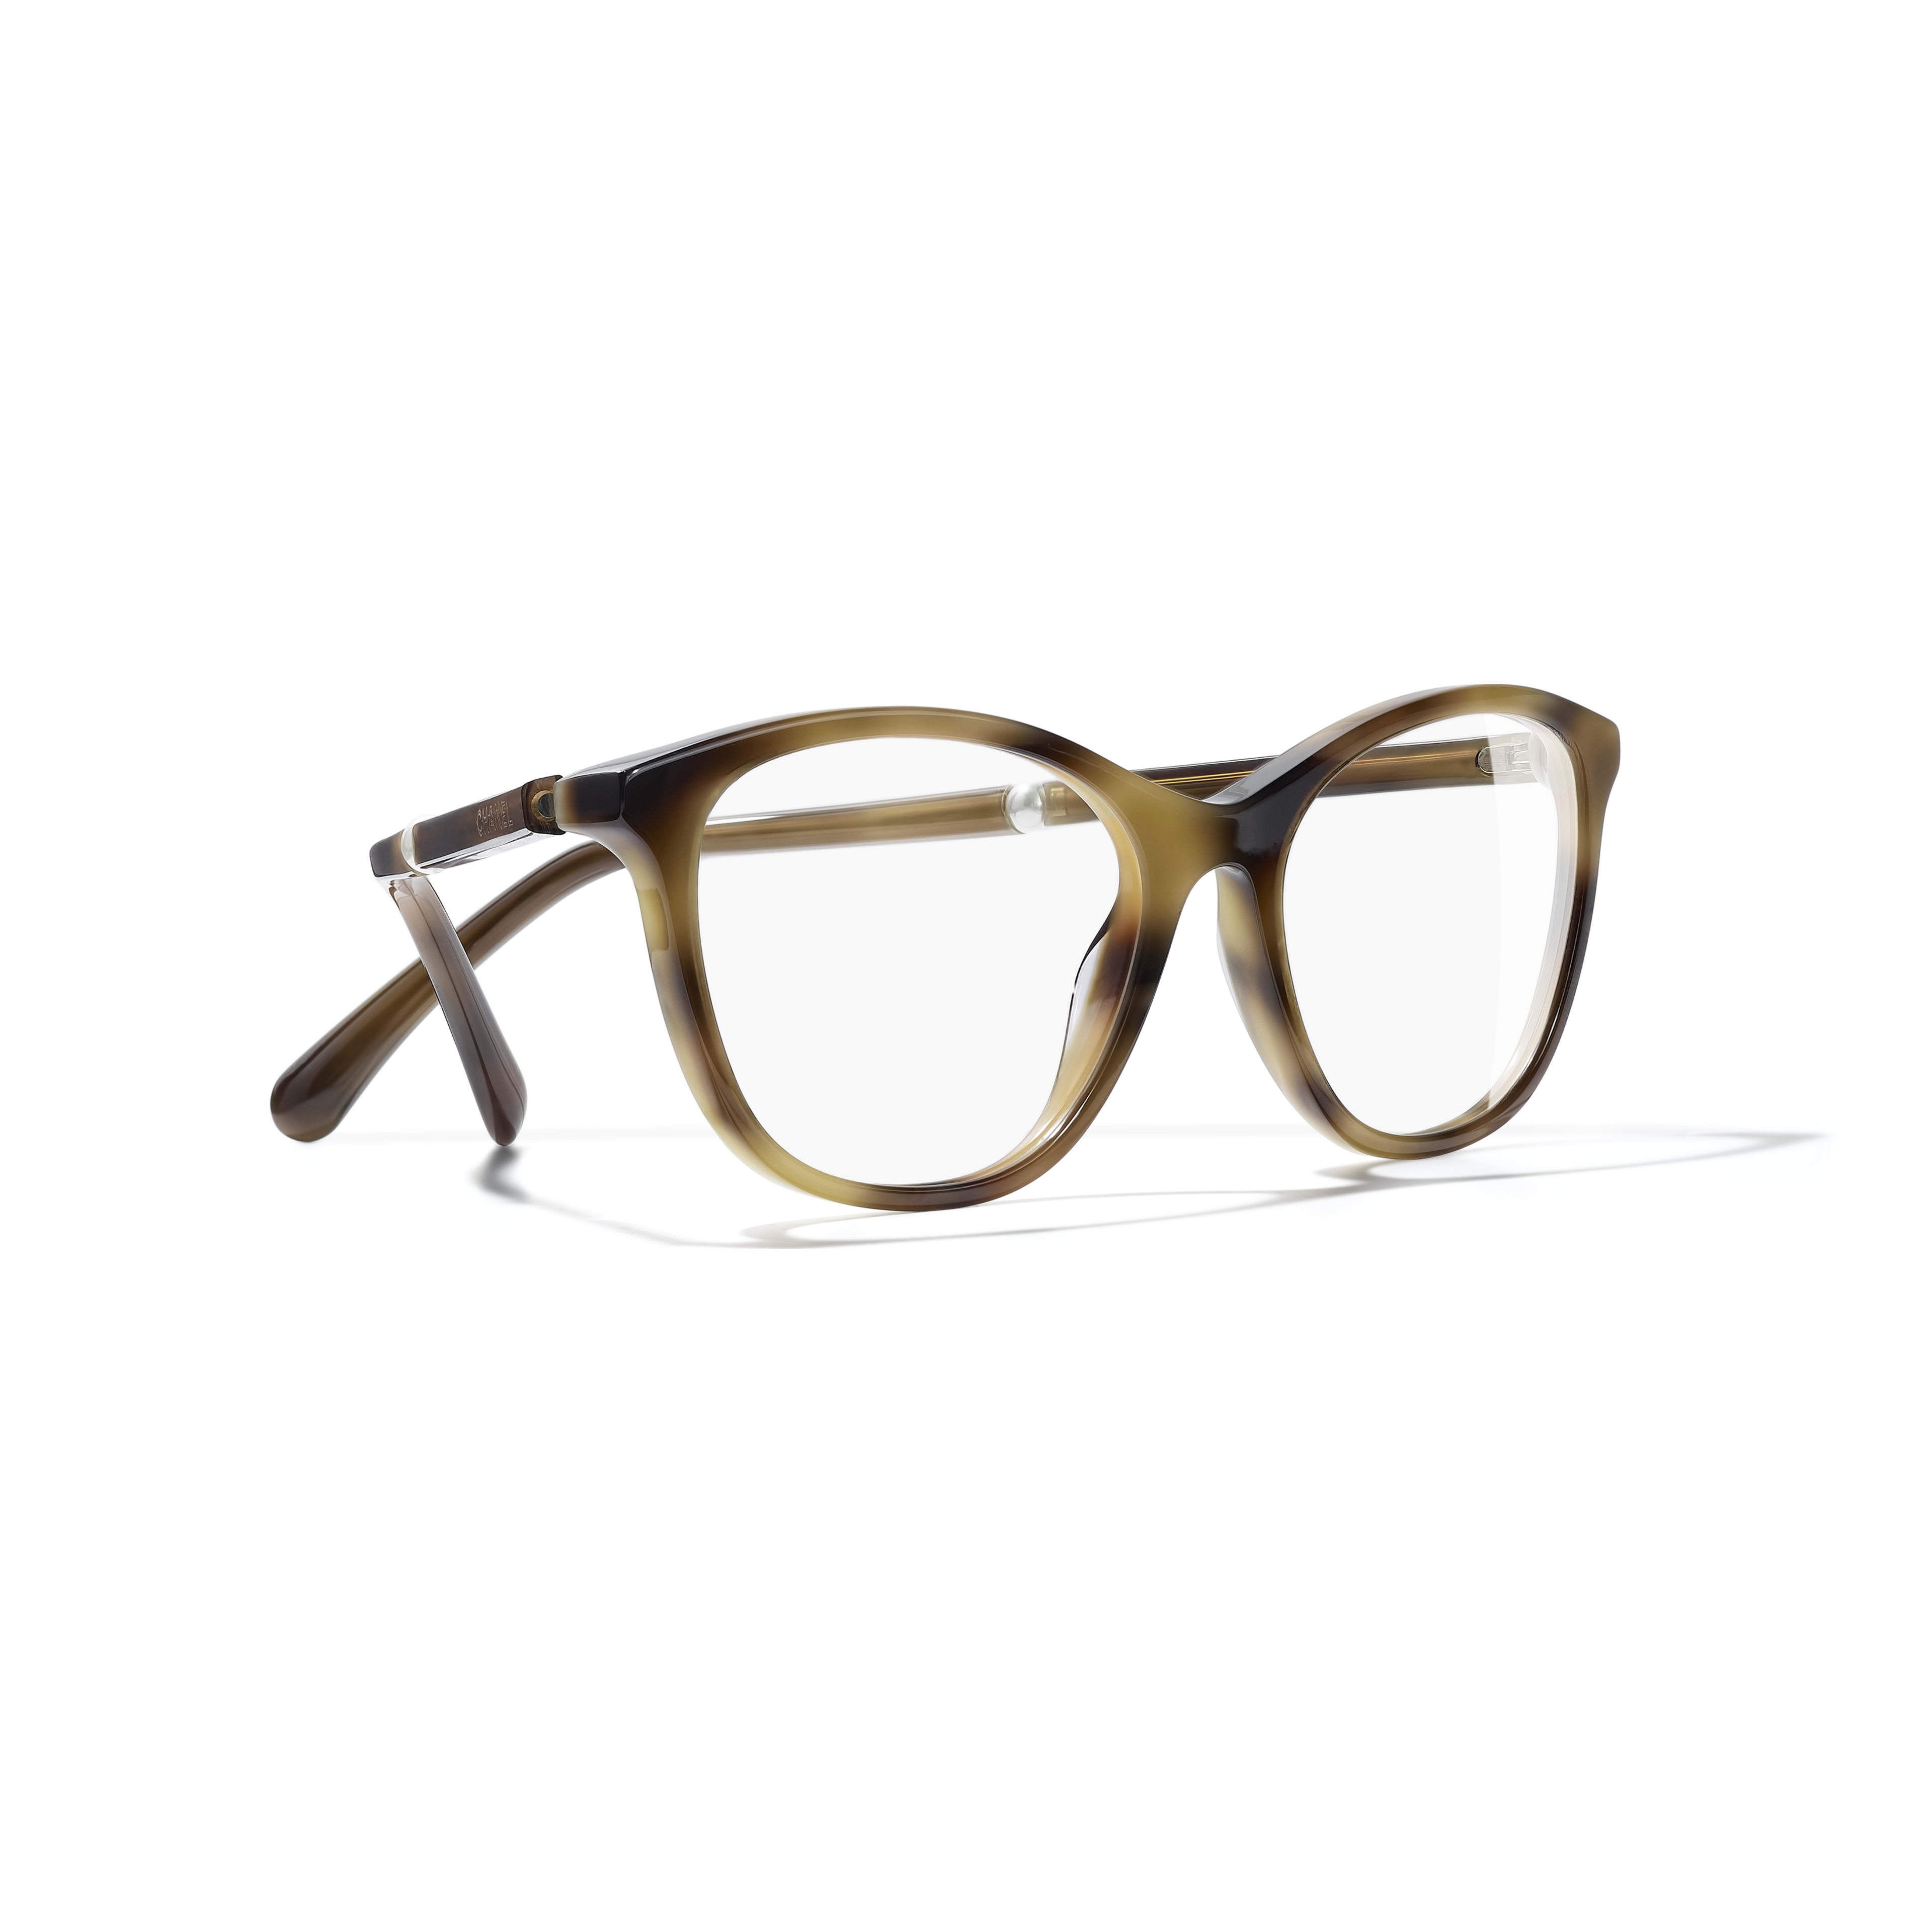 Rectangle Eyeglasses - Tortoise - Acetate & Imitation Pearls - Extra view - see full sized version